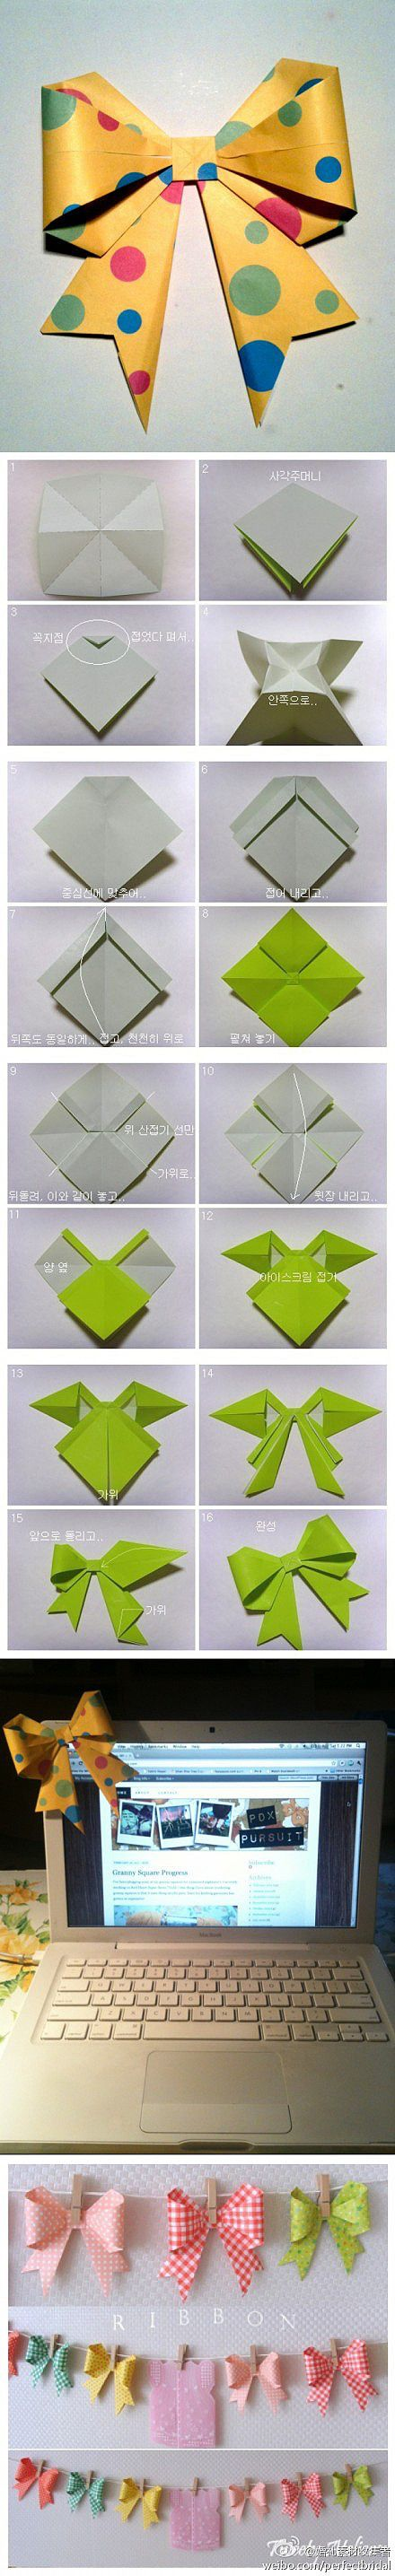 DIY paper bow, i love how it's unlike other directions because there is no cutting involved like real origami! :D